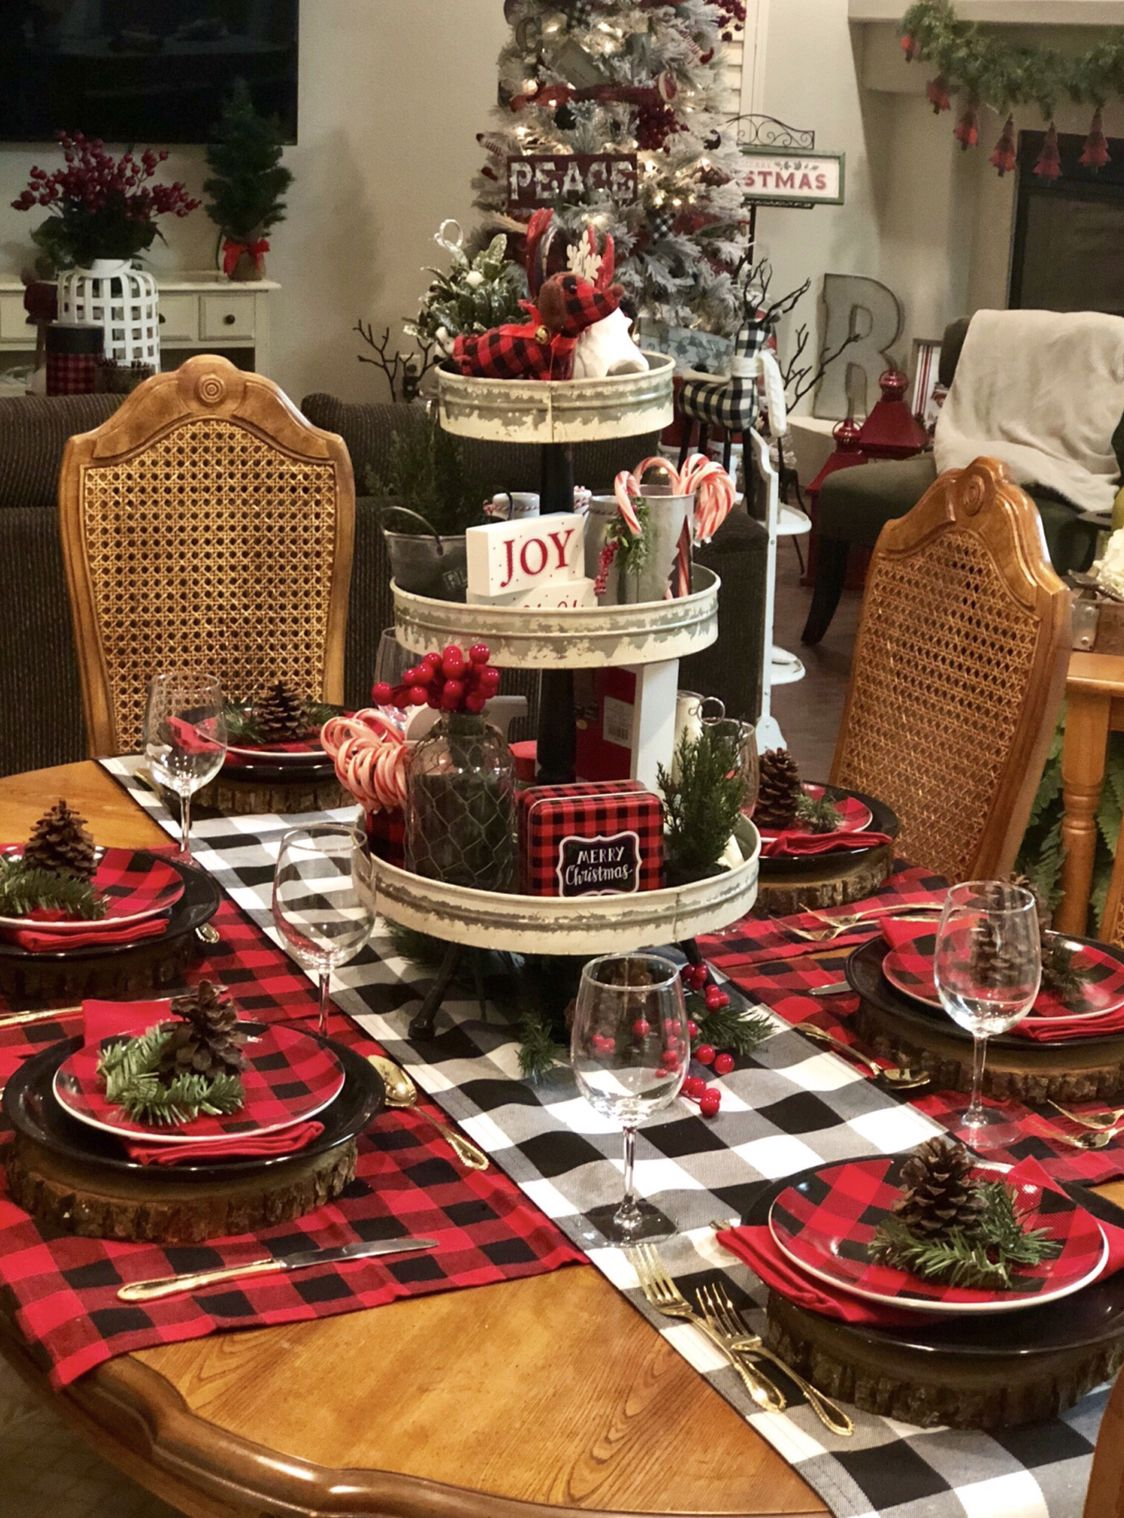 I Love My Table Buffalo Check Is My Jam This Christmas And Easy To Put Together Black Christmas Decorations Christmas Table Decorations Christmas Centerpieces